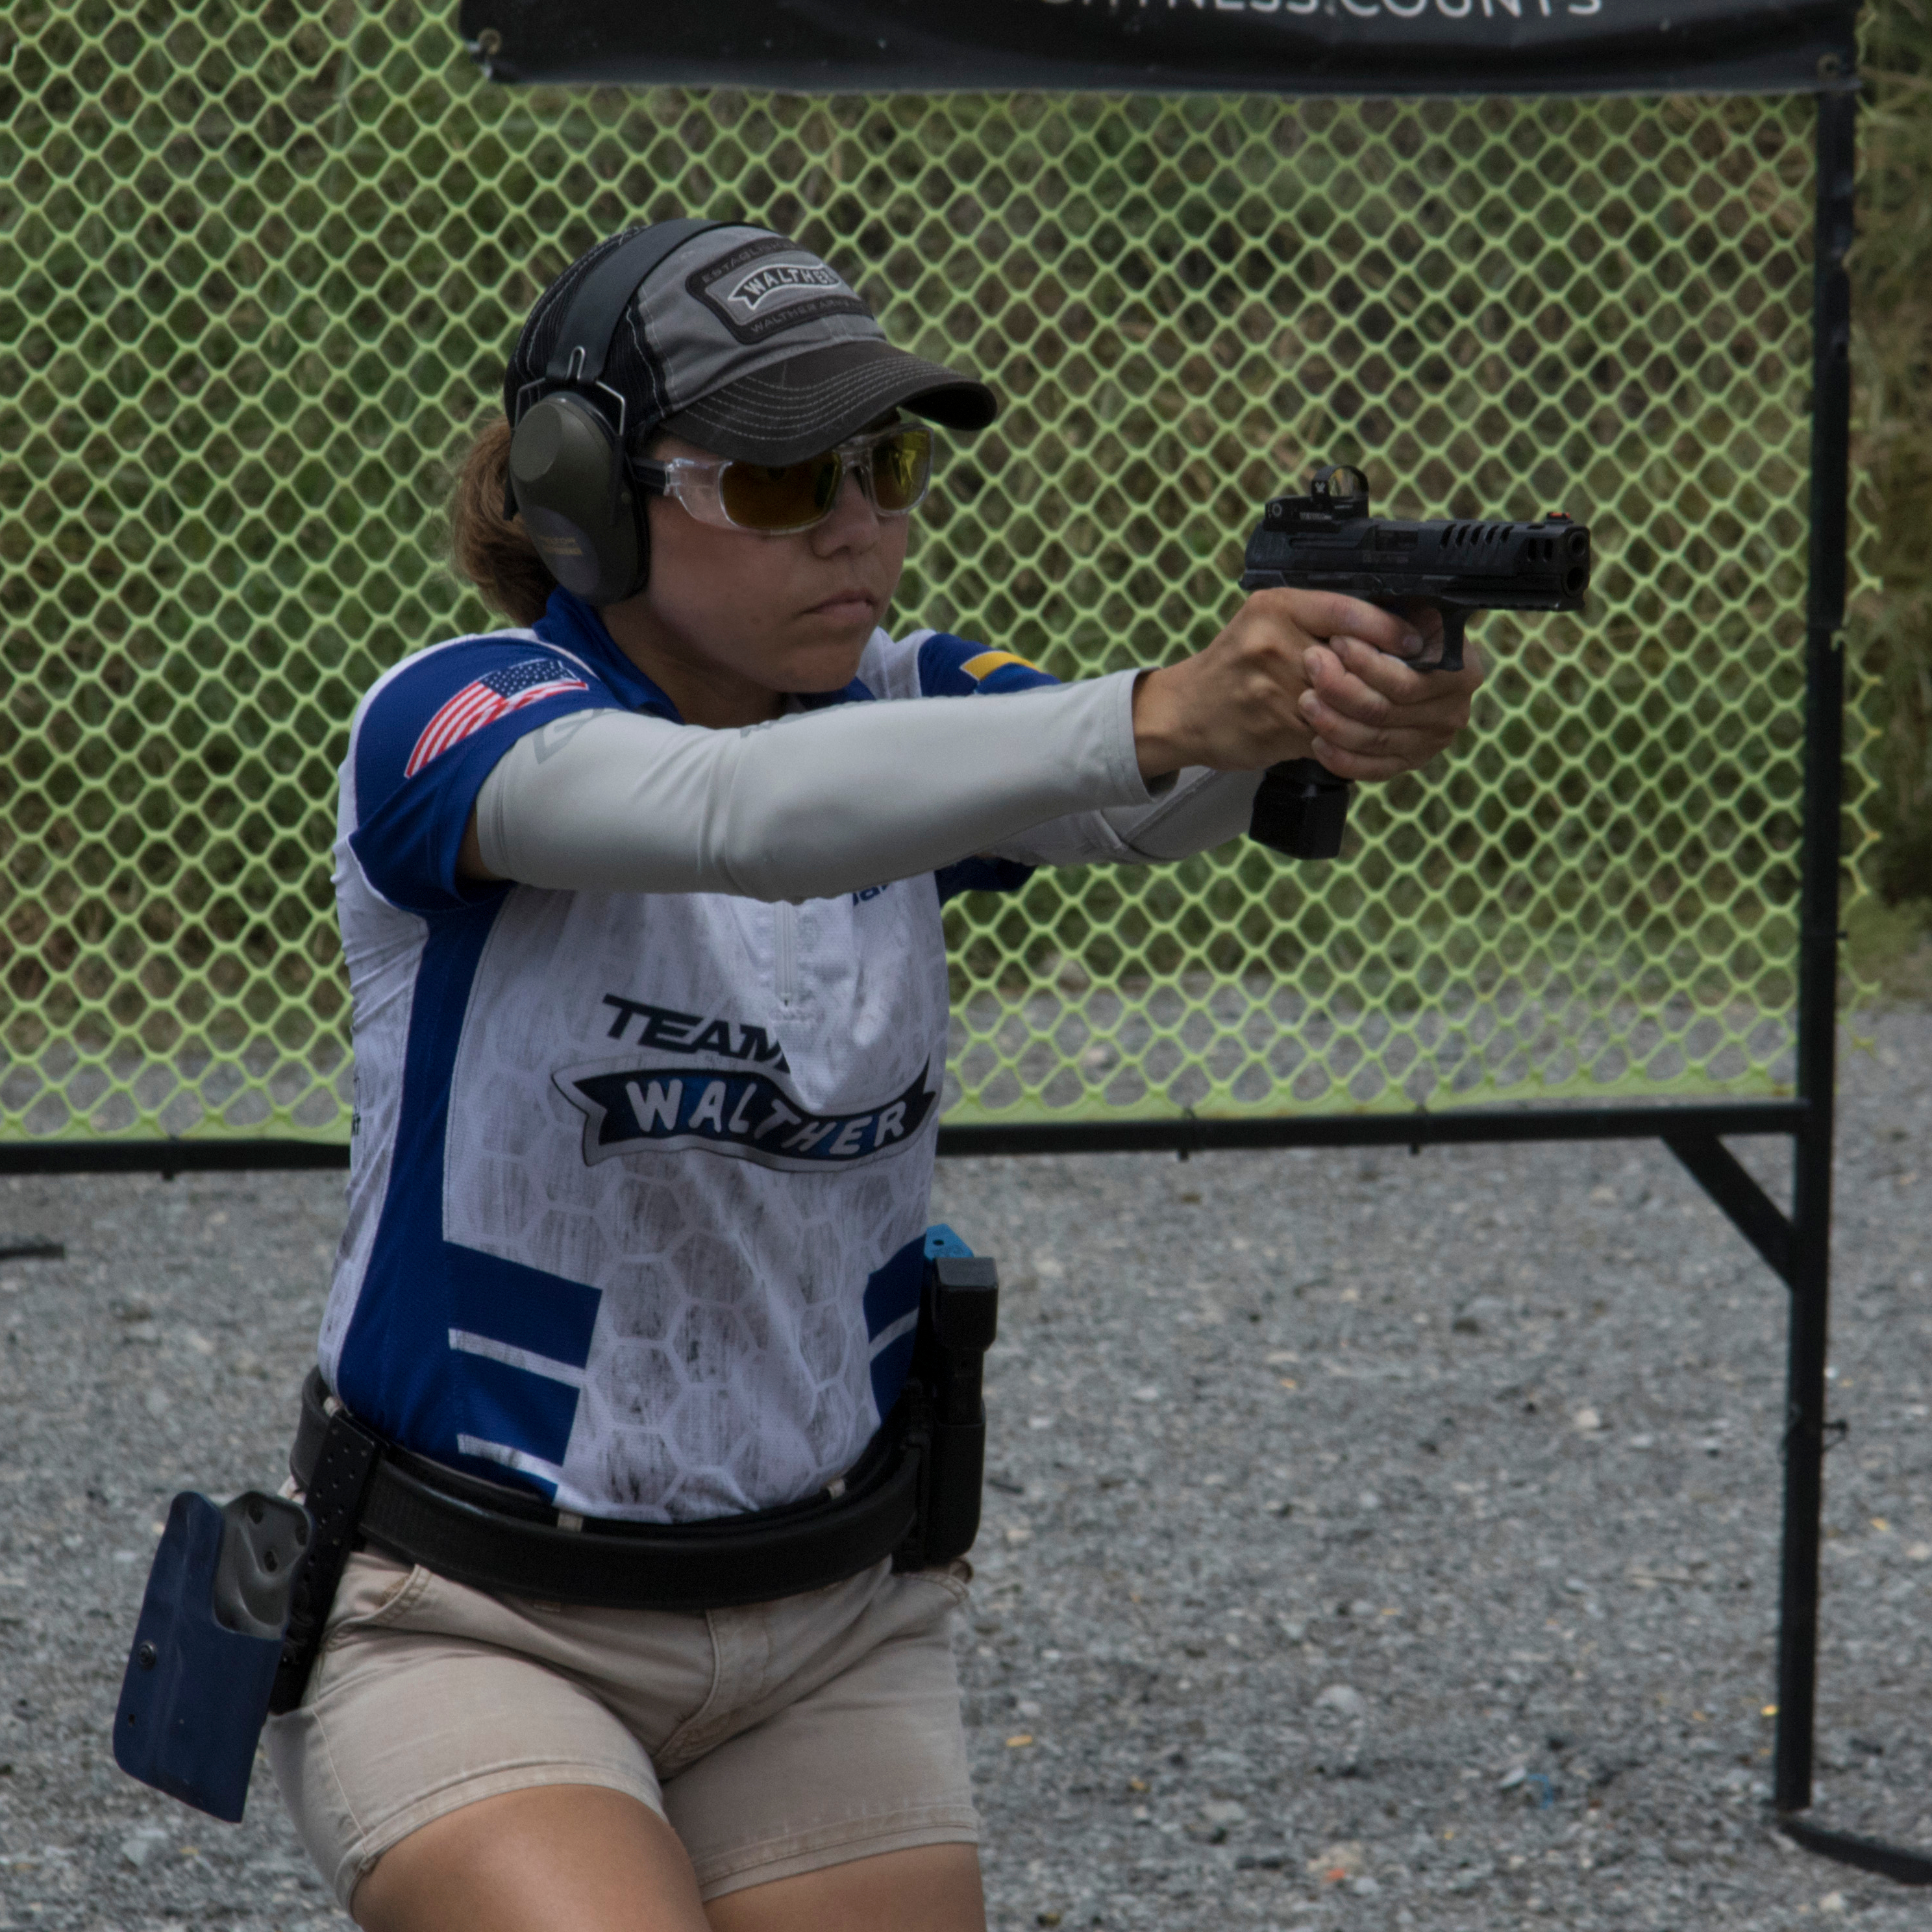 Walther Team Gabby Franco - Photo by Steve Loker